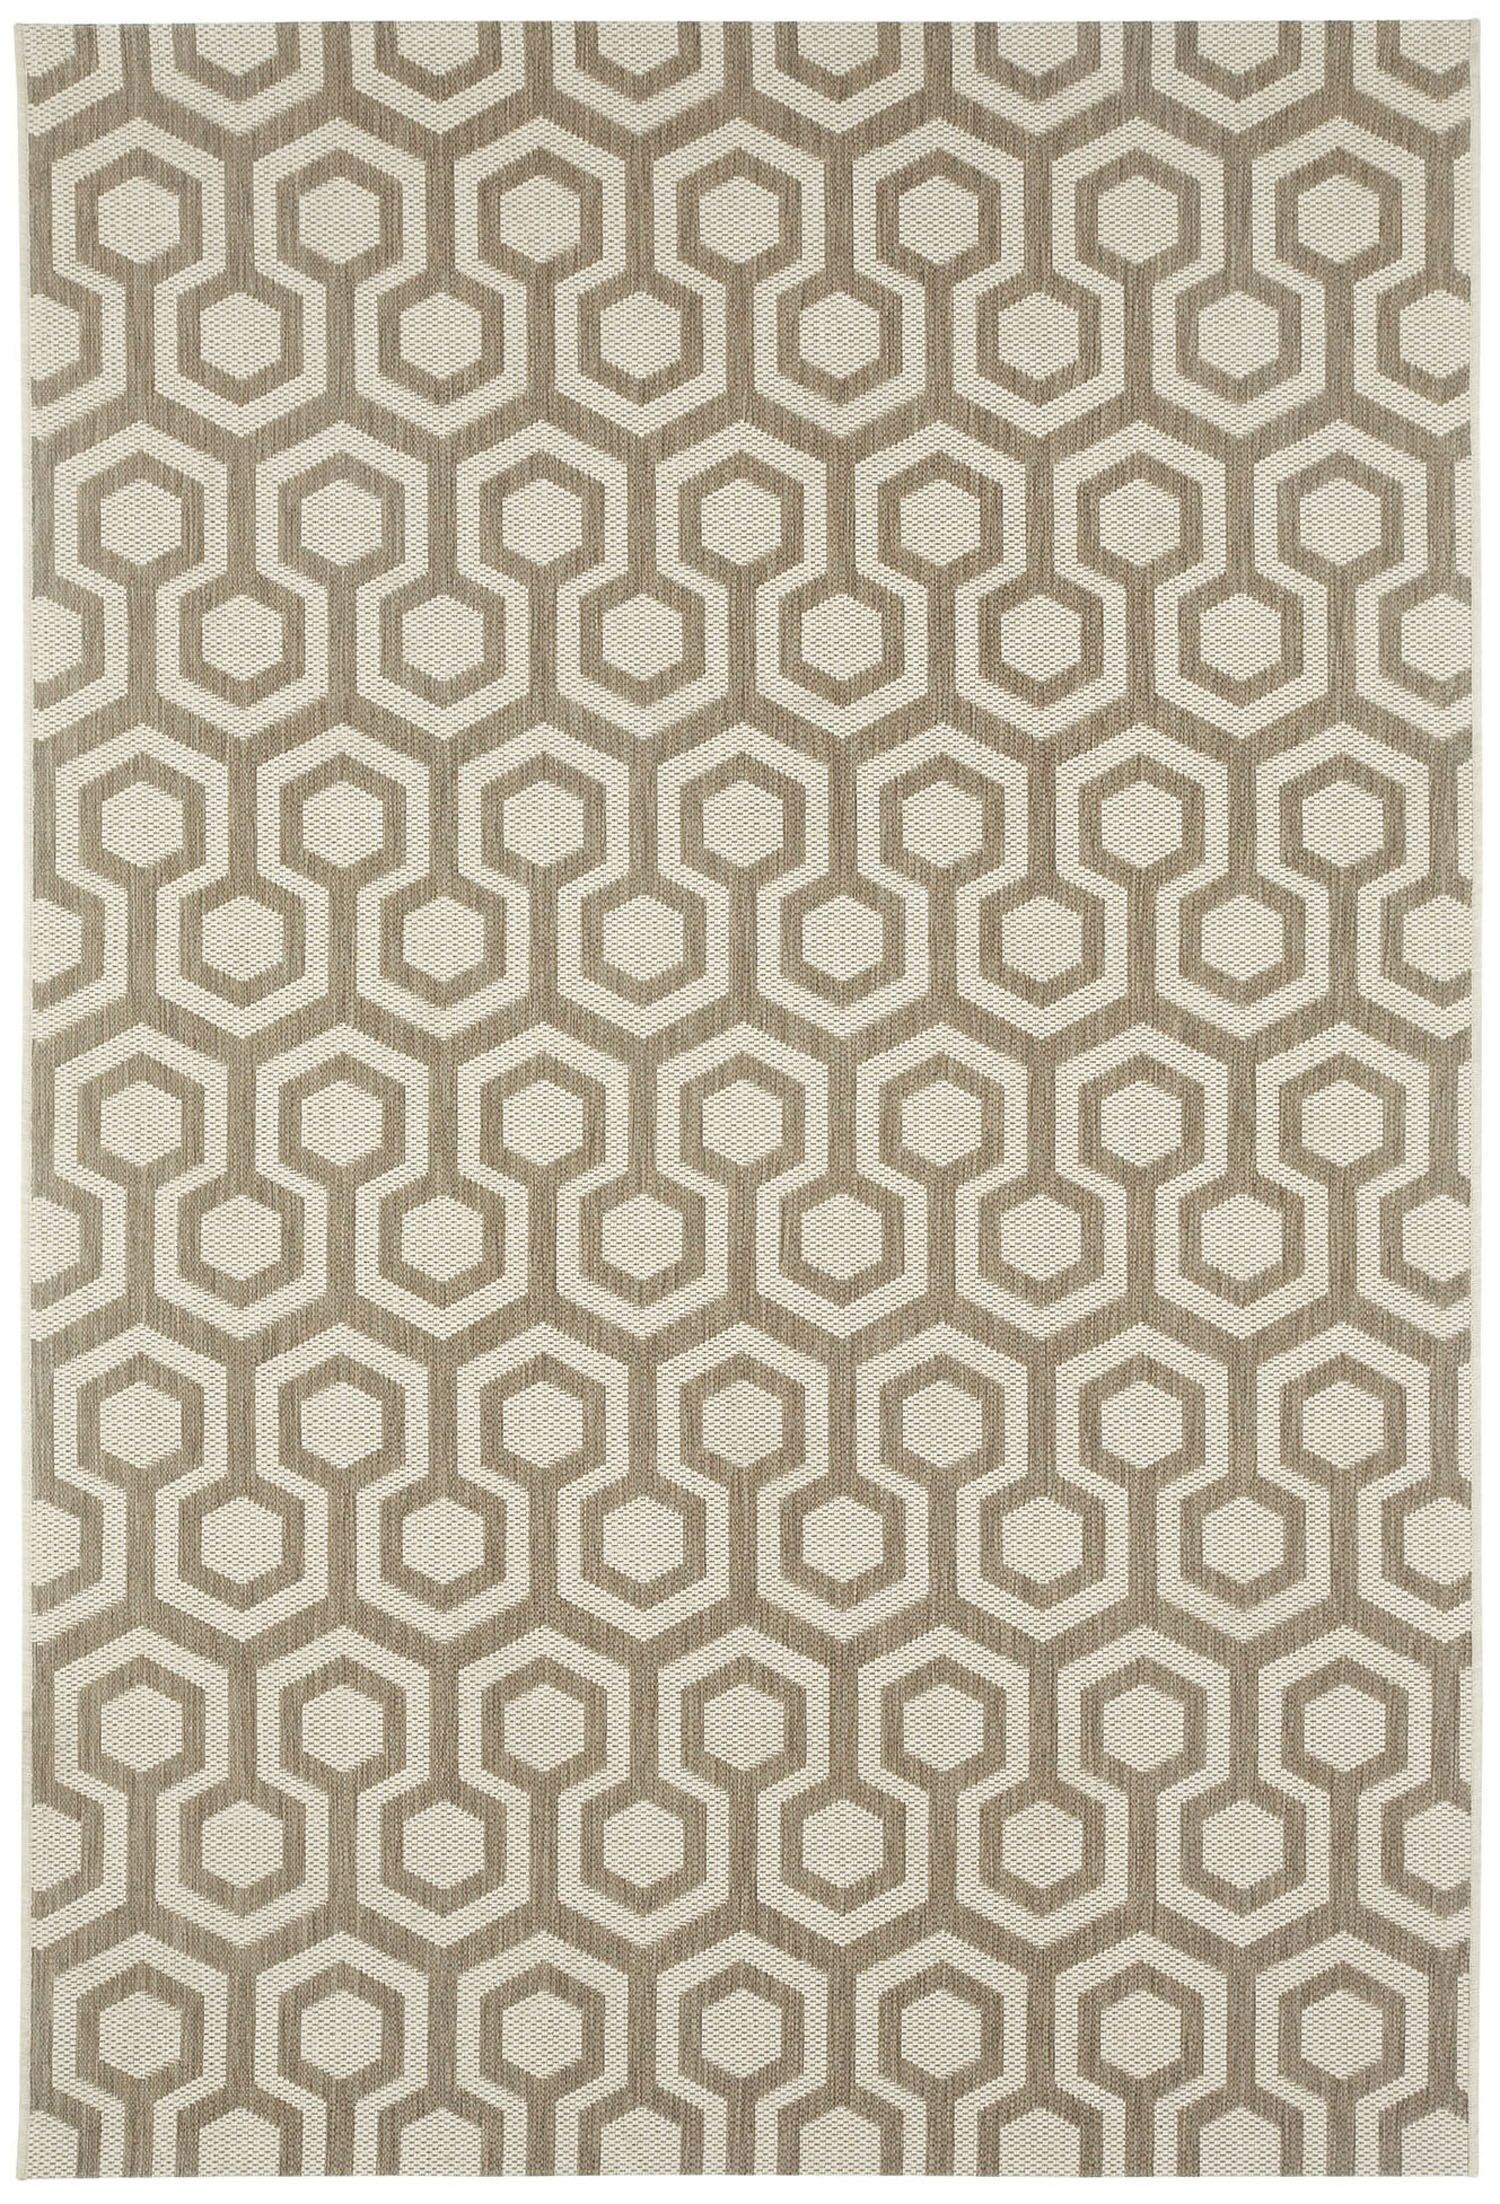 Malle Brown/Tan Honeycombs Indoor/Outdoor Area Rug Rug Size: Rectangle 5'3